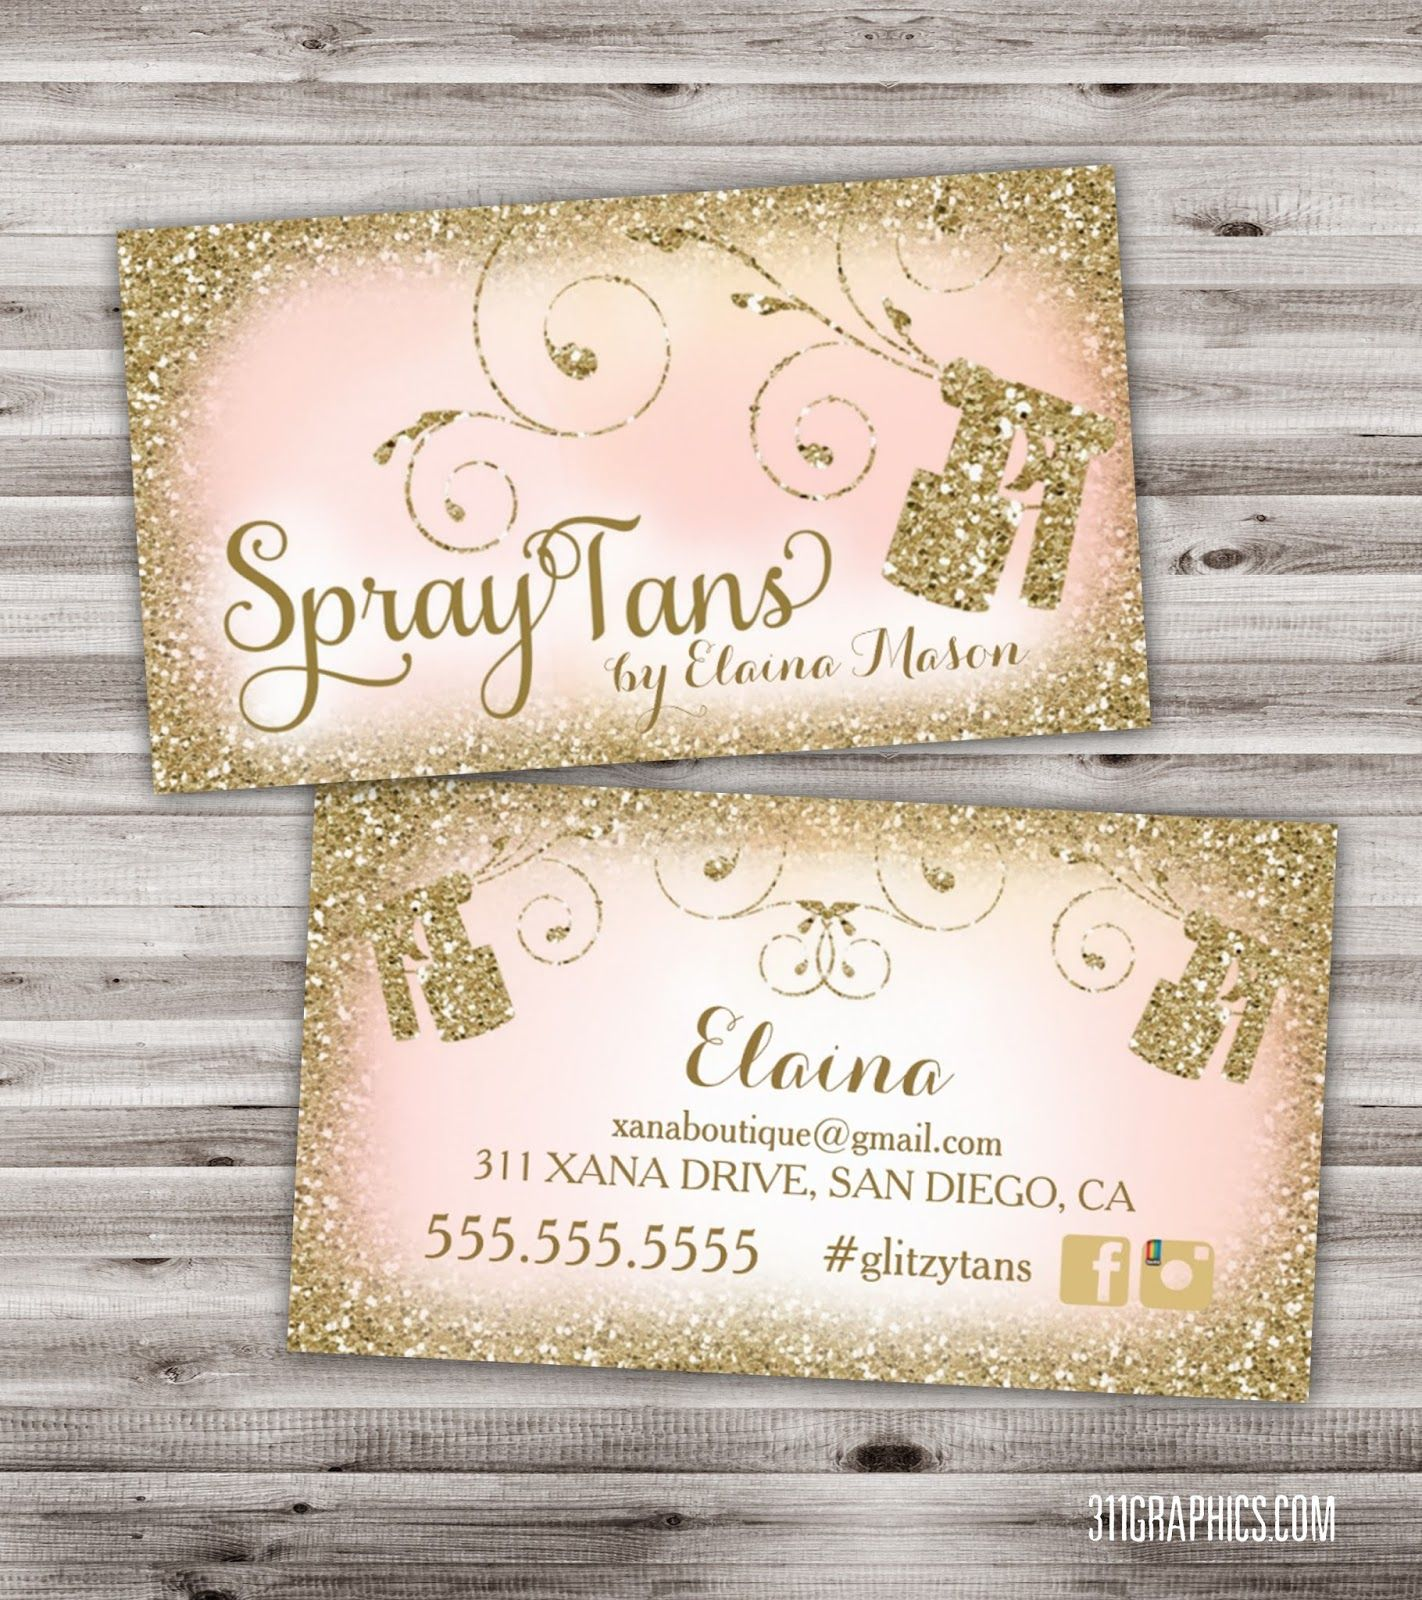 Pin by jill leonard mcamis on makeup spray tan etc business cards love these without the spray things colourmoves